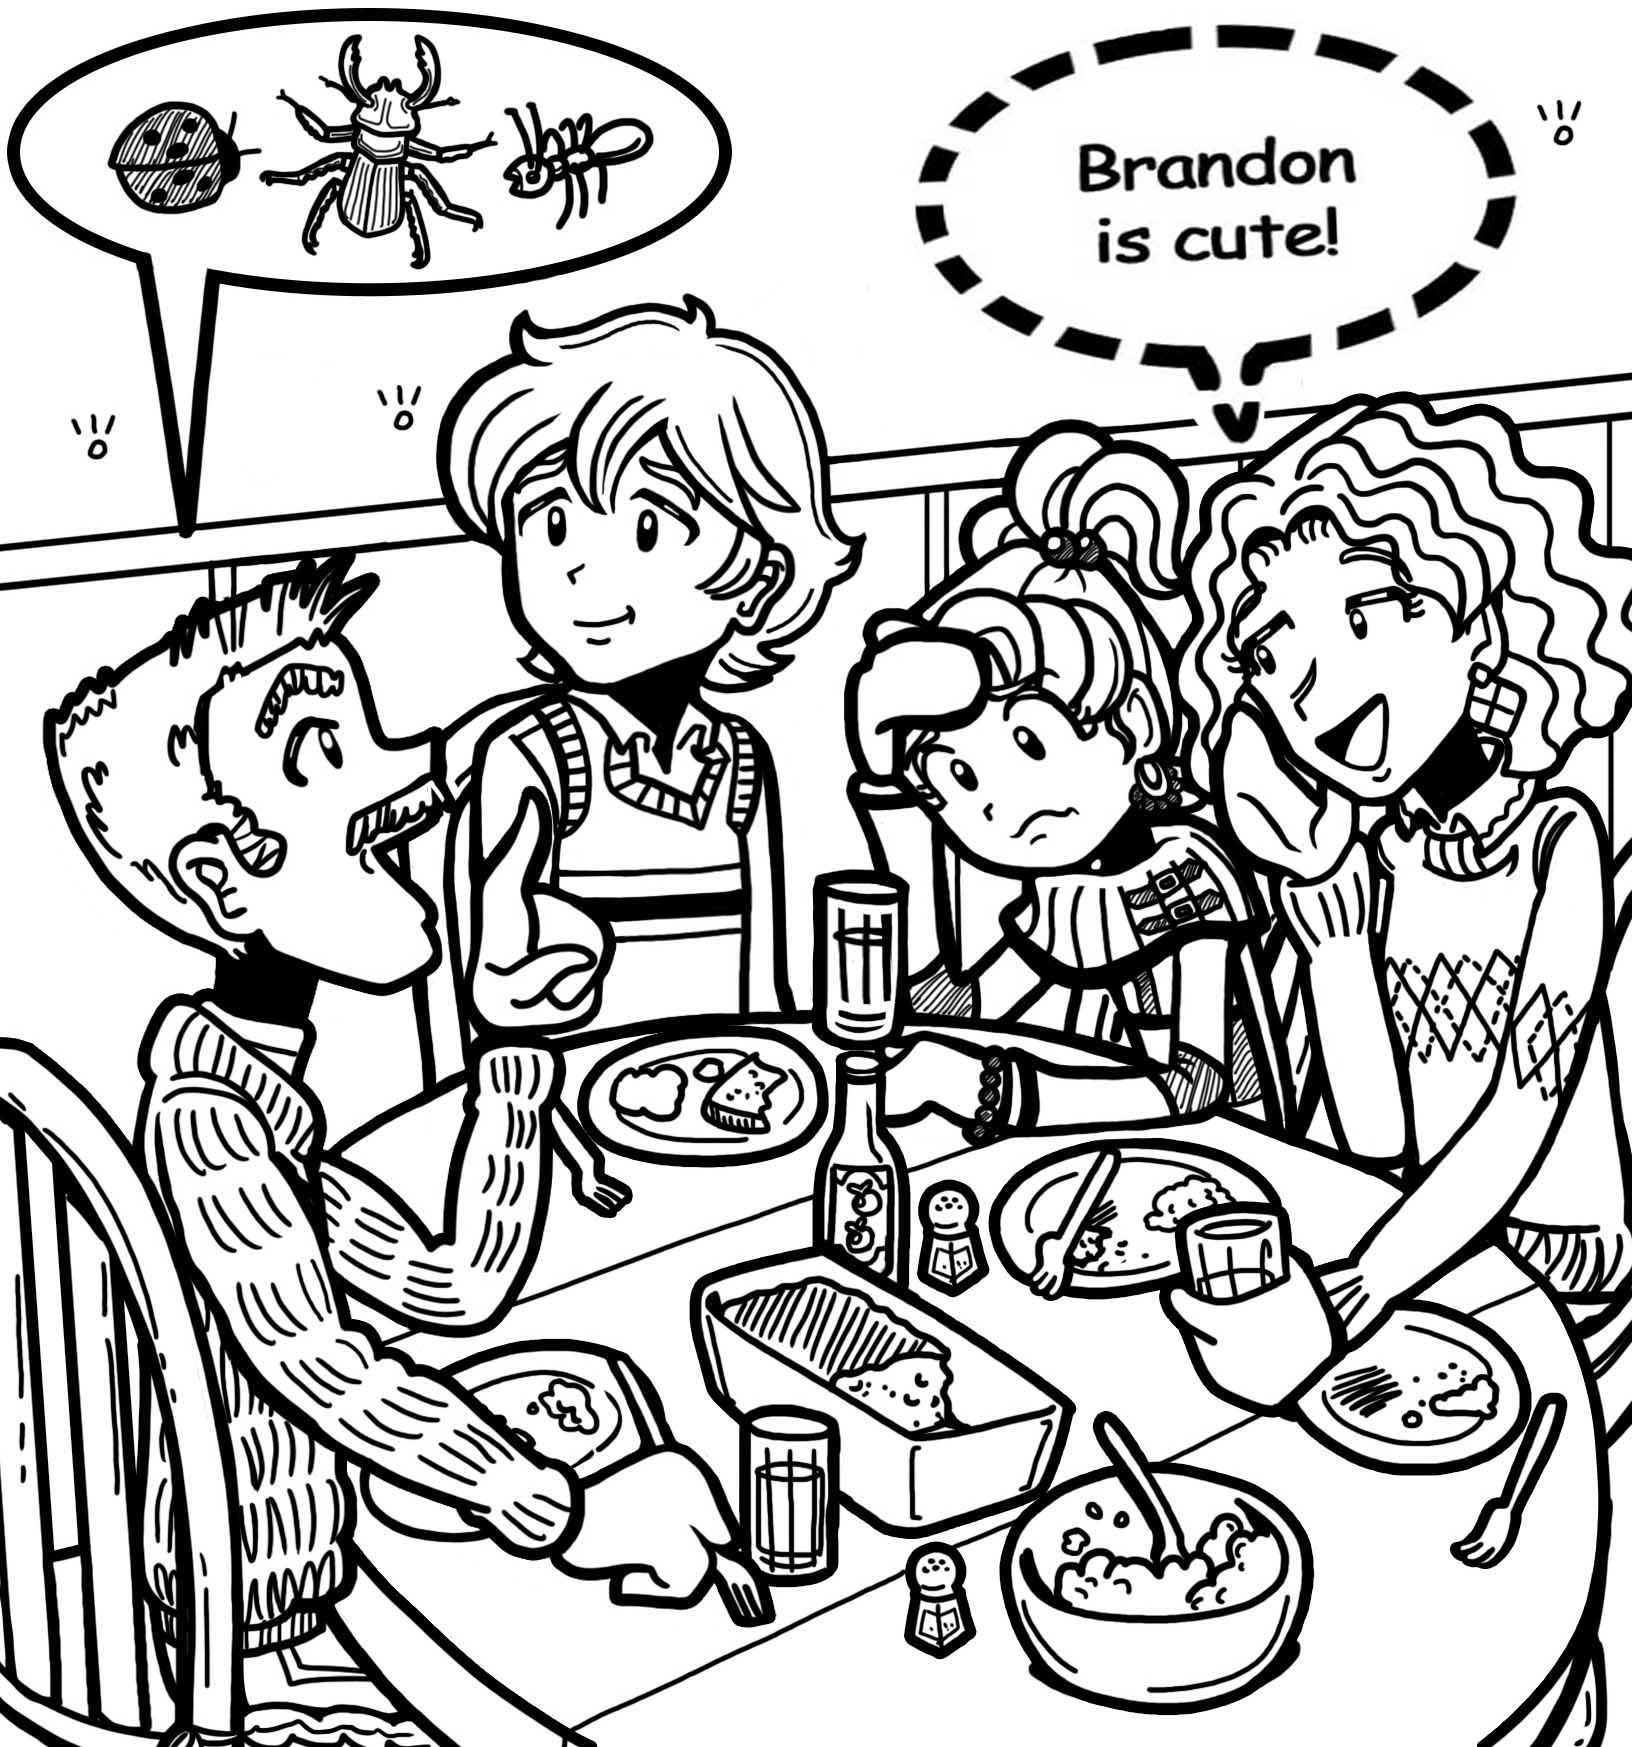 dork diaries 8 coloring pages - photo#20